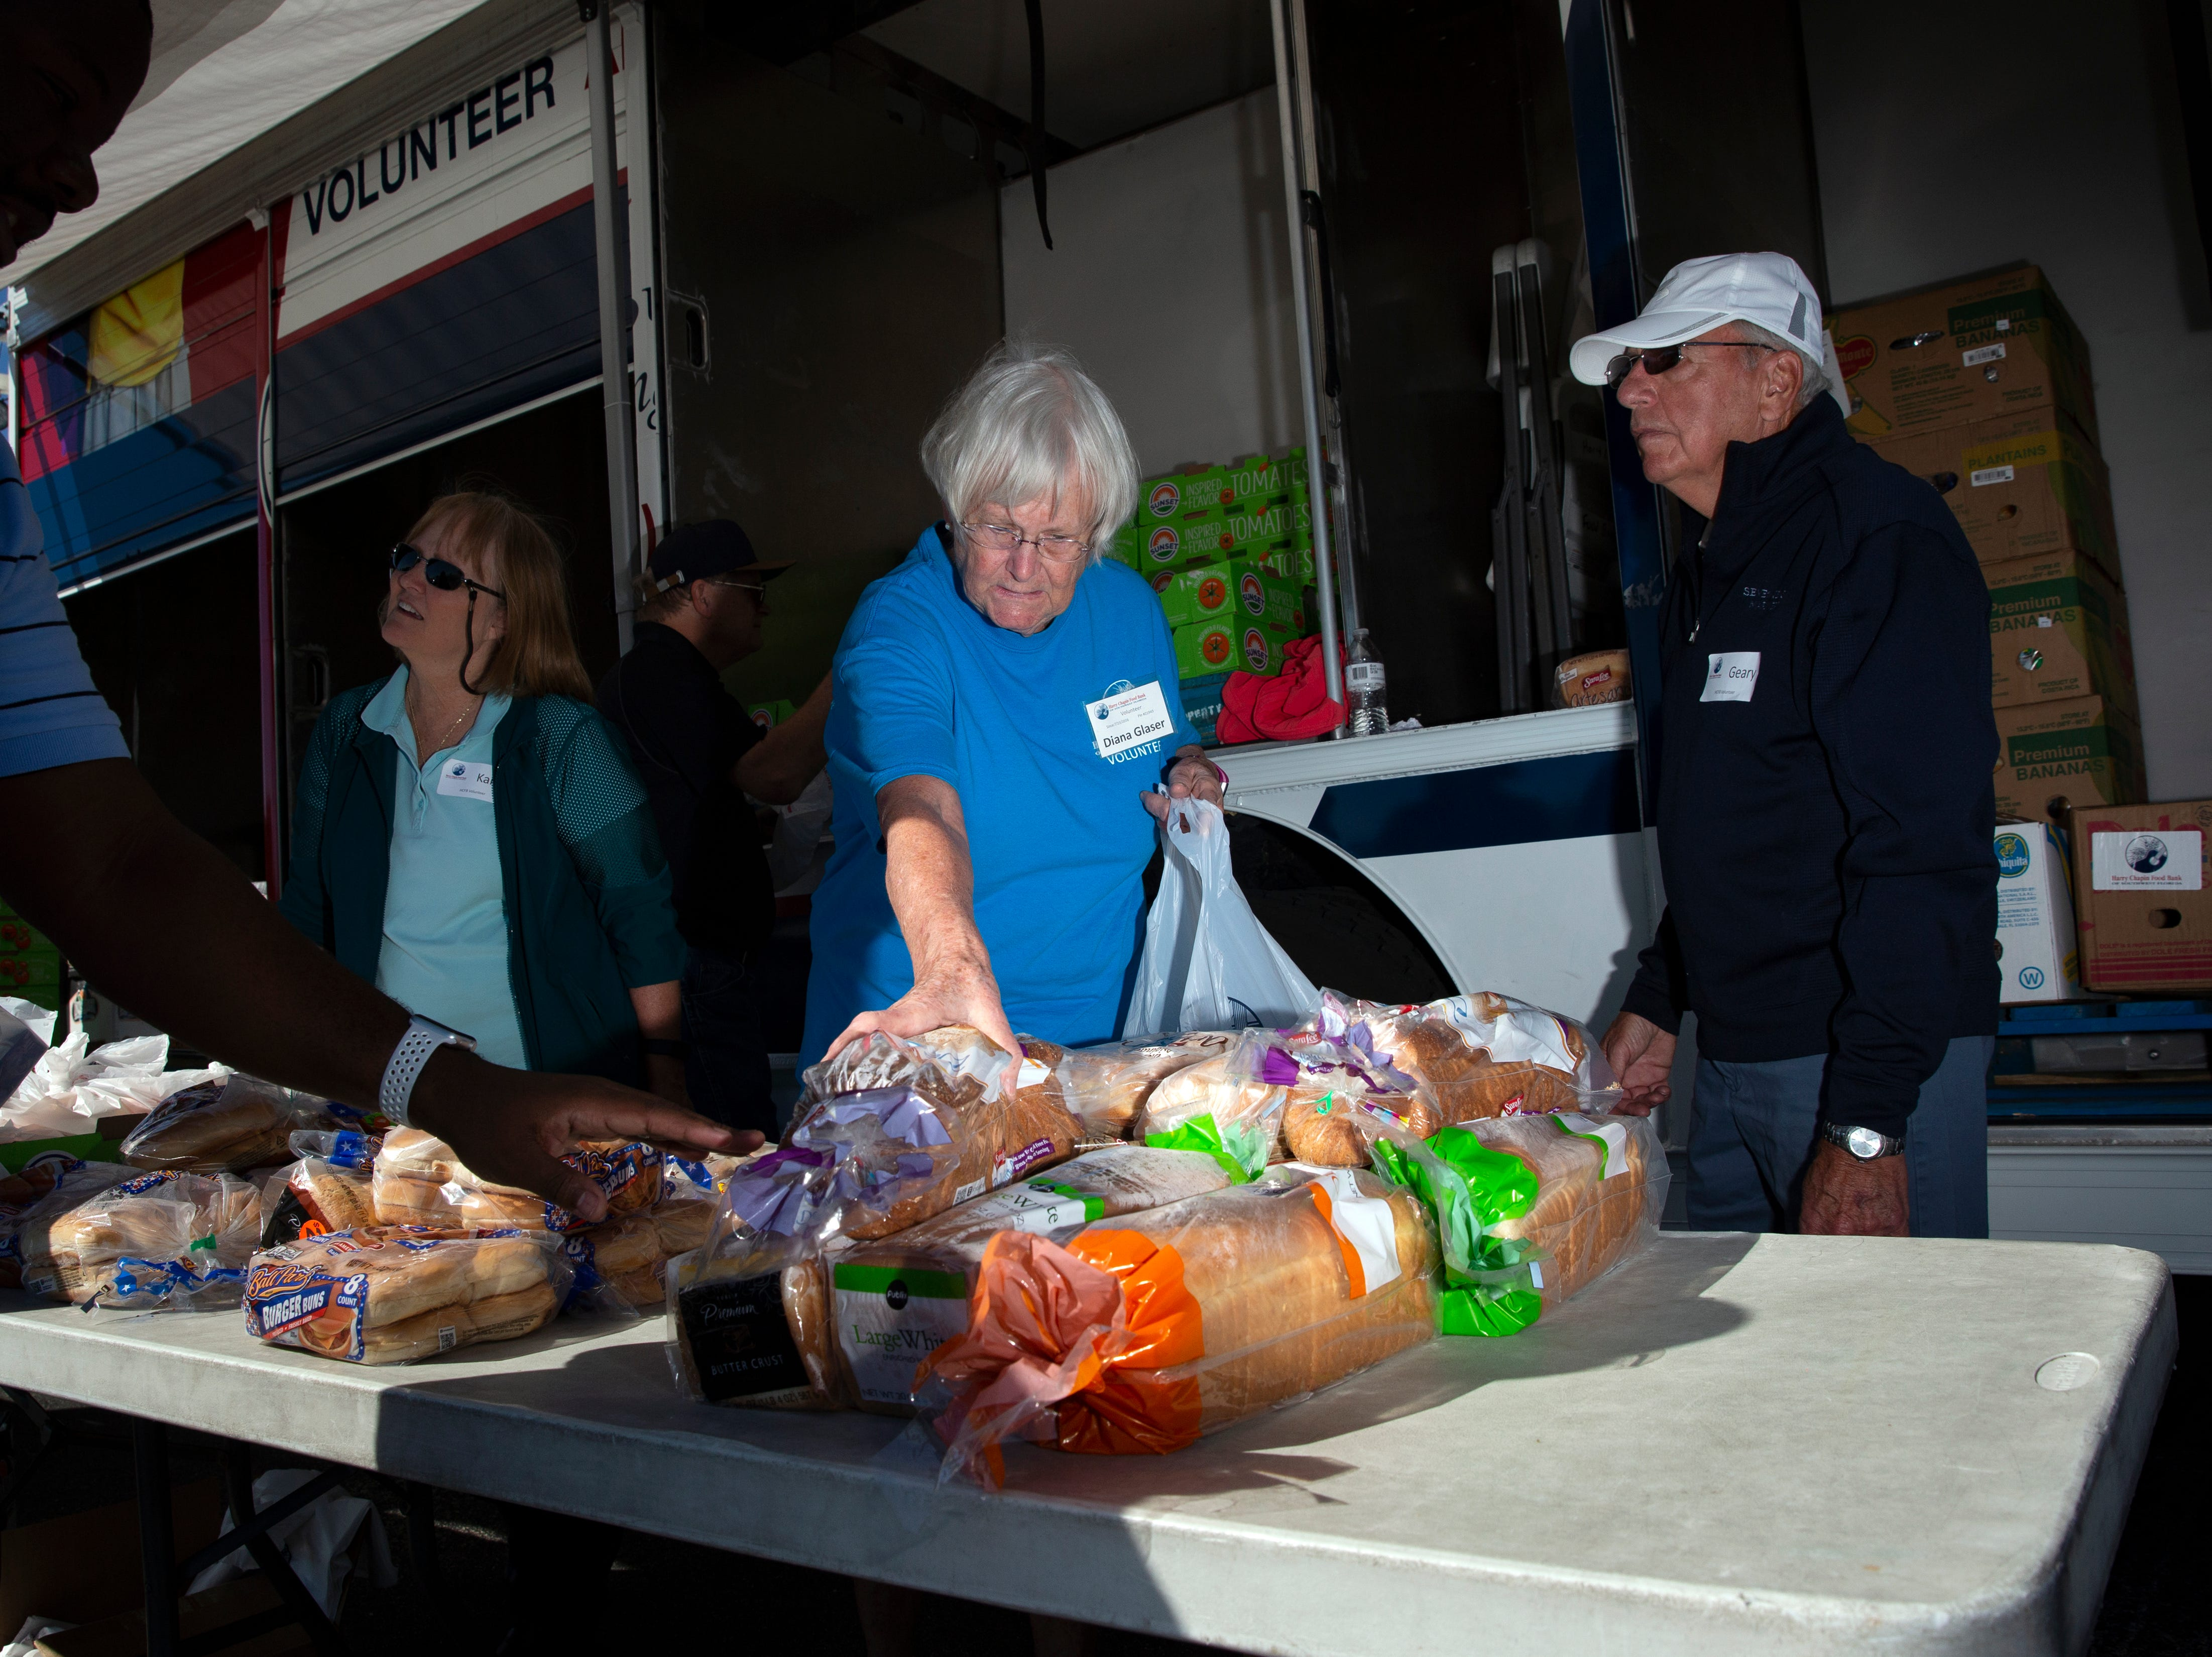 Harry Chapin Food Bank volunteers, Karen Medhurst, left, Diana Glaser, center, and Geary Francis distribute food, Friday, Jan. 18, 2019, at the Southwest Florida International Airport in Fort Myers.